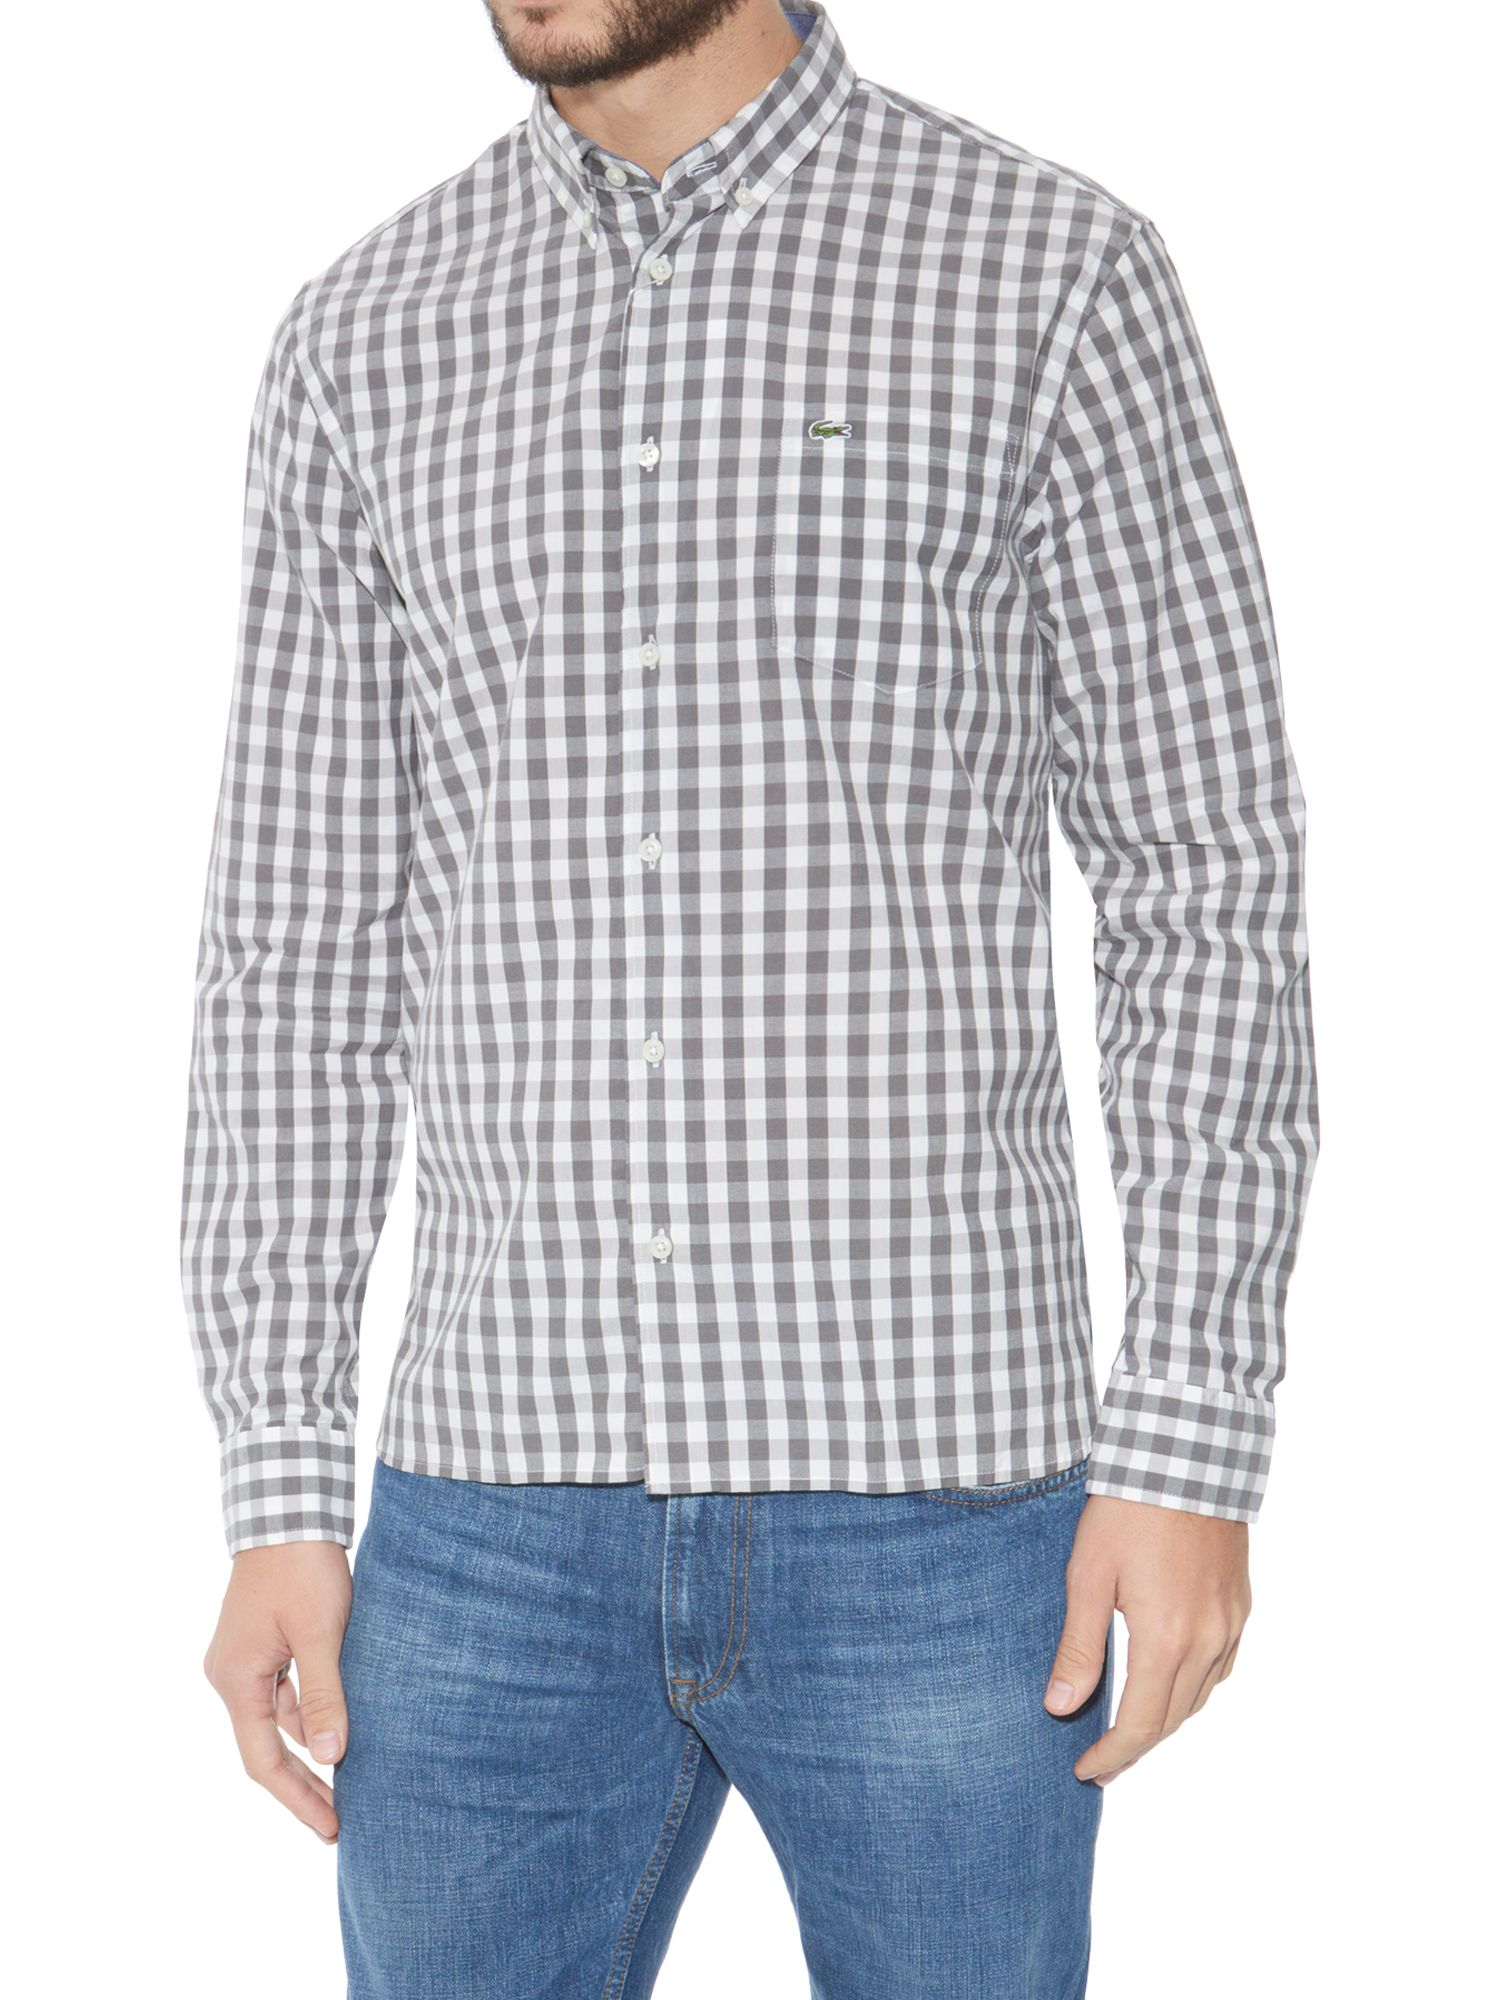 lacoste large gingham check shirt in gray for men grey